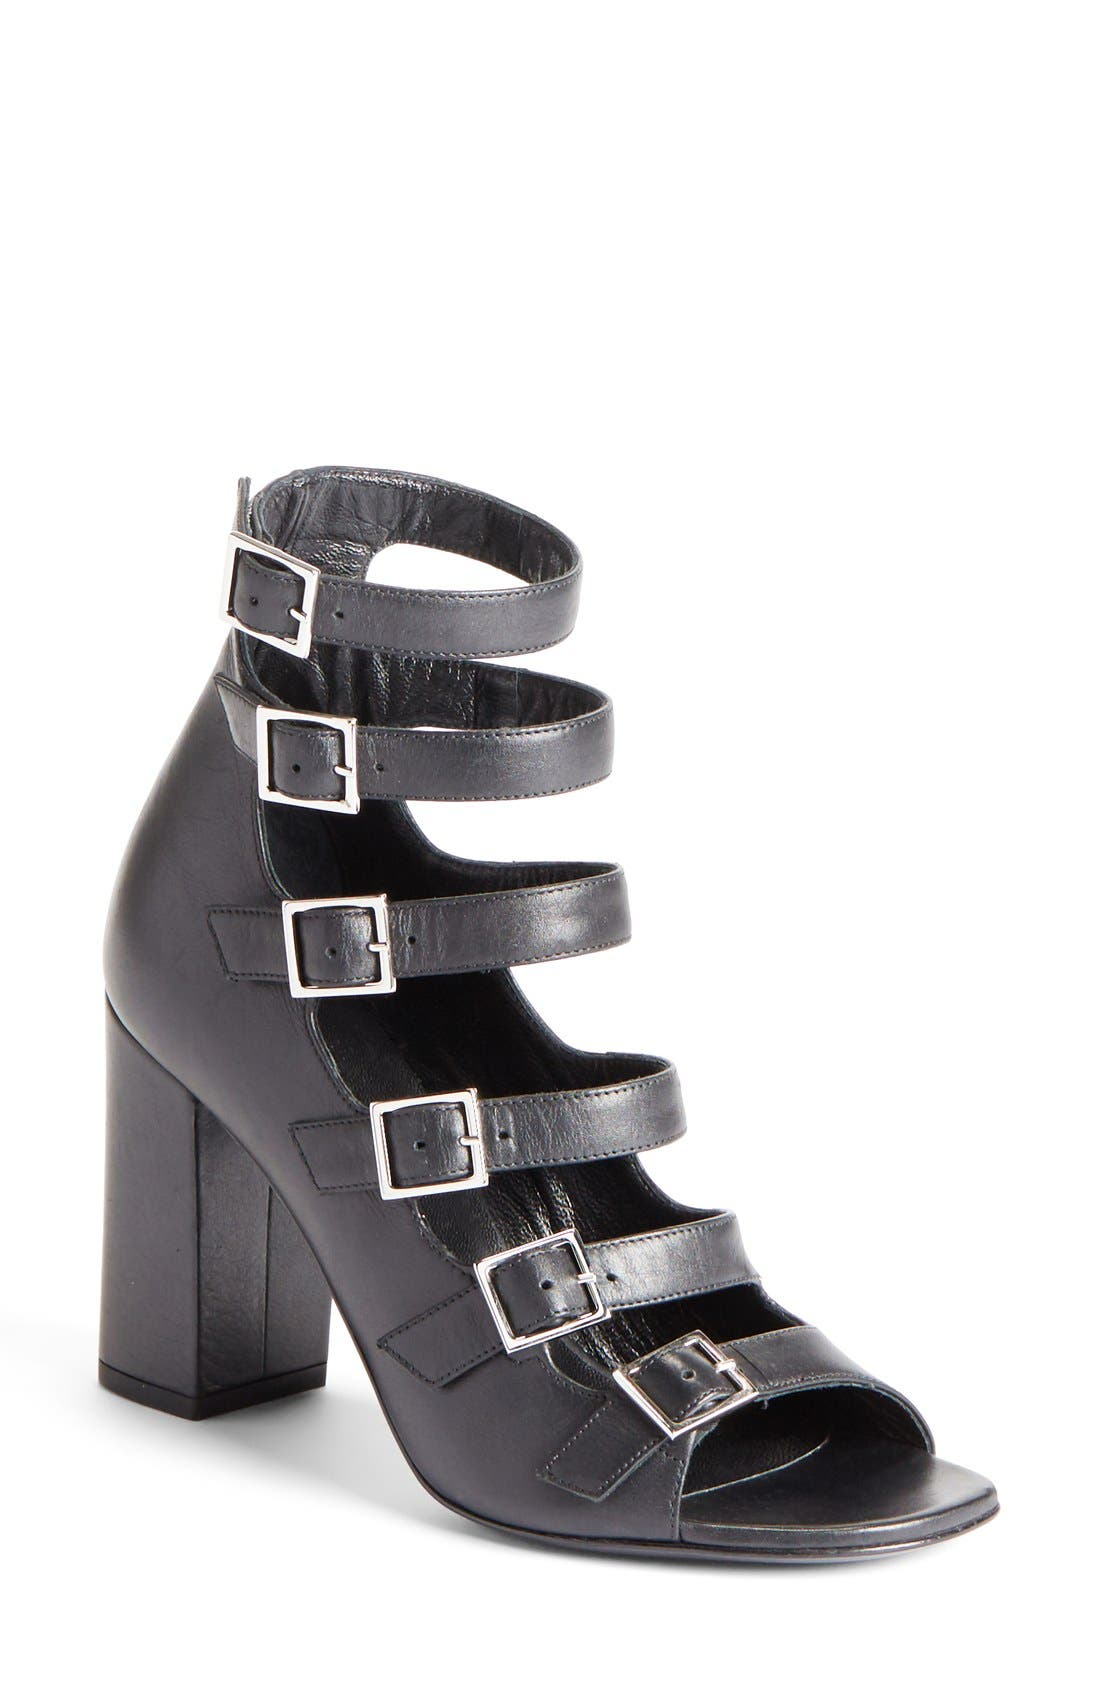 Alternate Image 1 Selected - Saint Laurent 'Babies' Buckle Strap Sandal (Women)